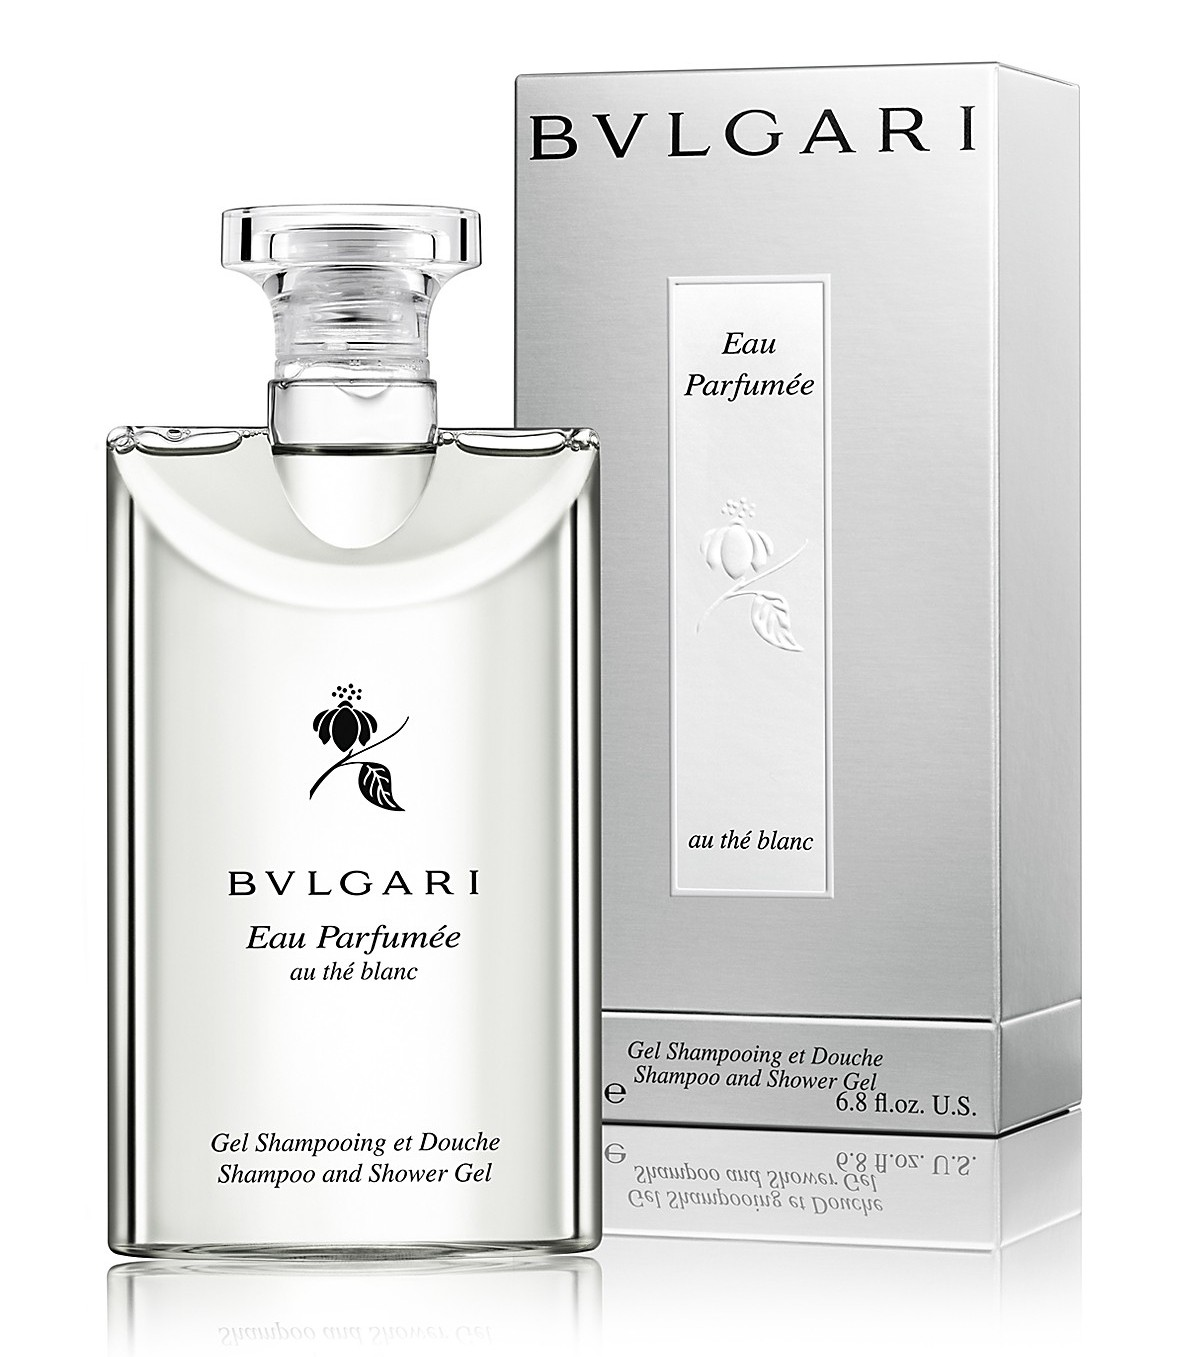 Most Expensive Shampoo in the World Top 5 Bvlgari Price